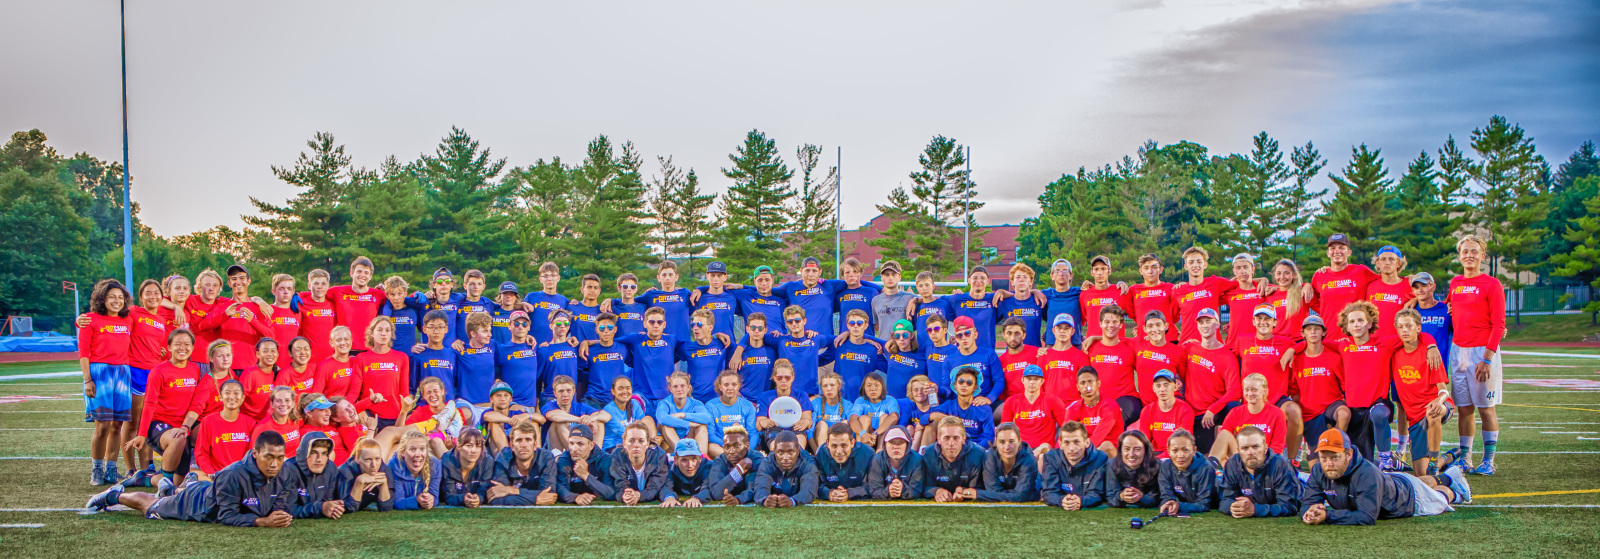 Youth Ultimate Frisbee Camps - Callahan Scholarship